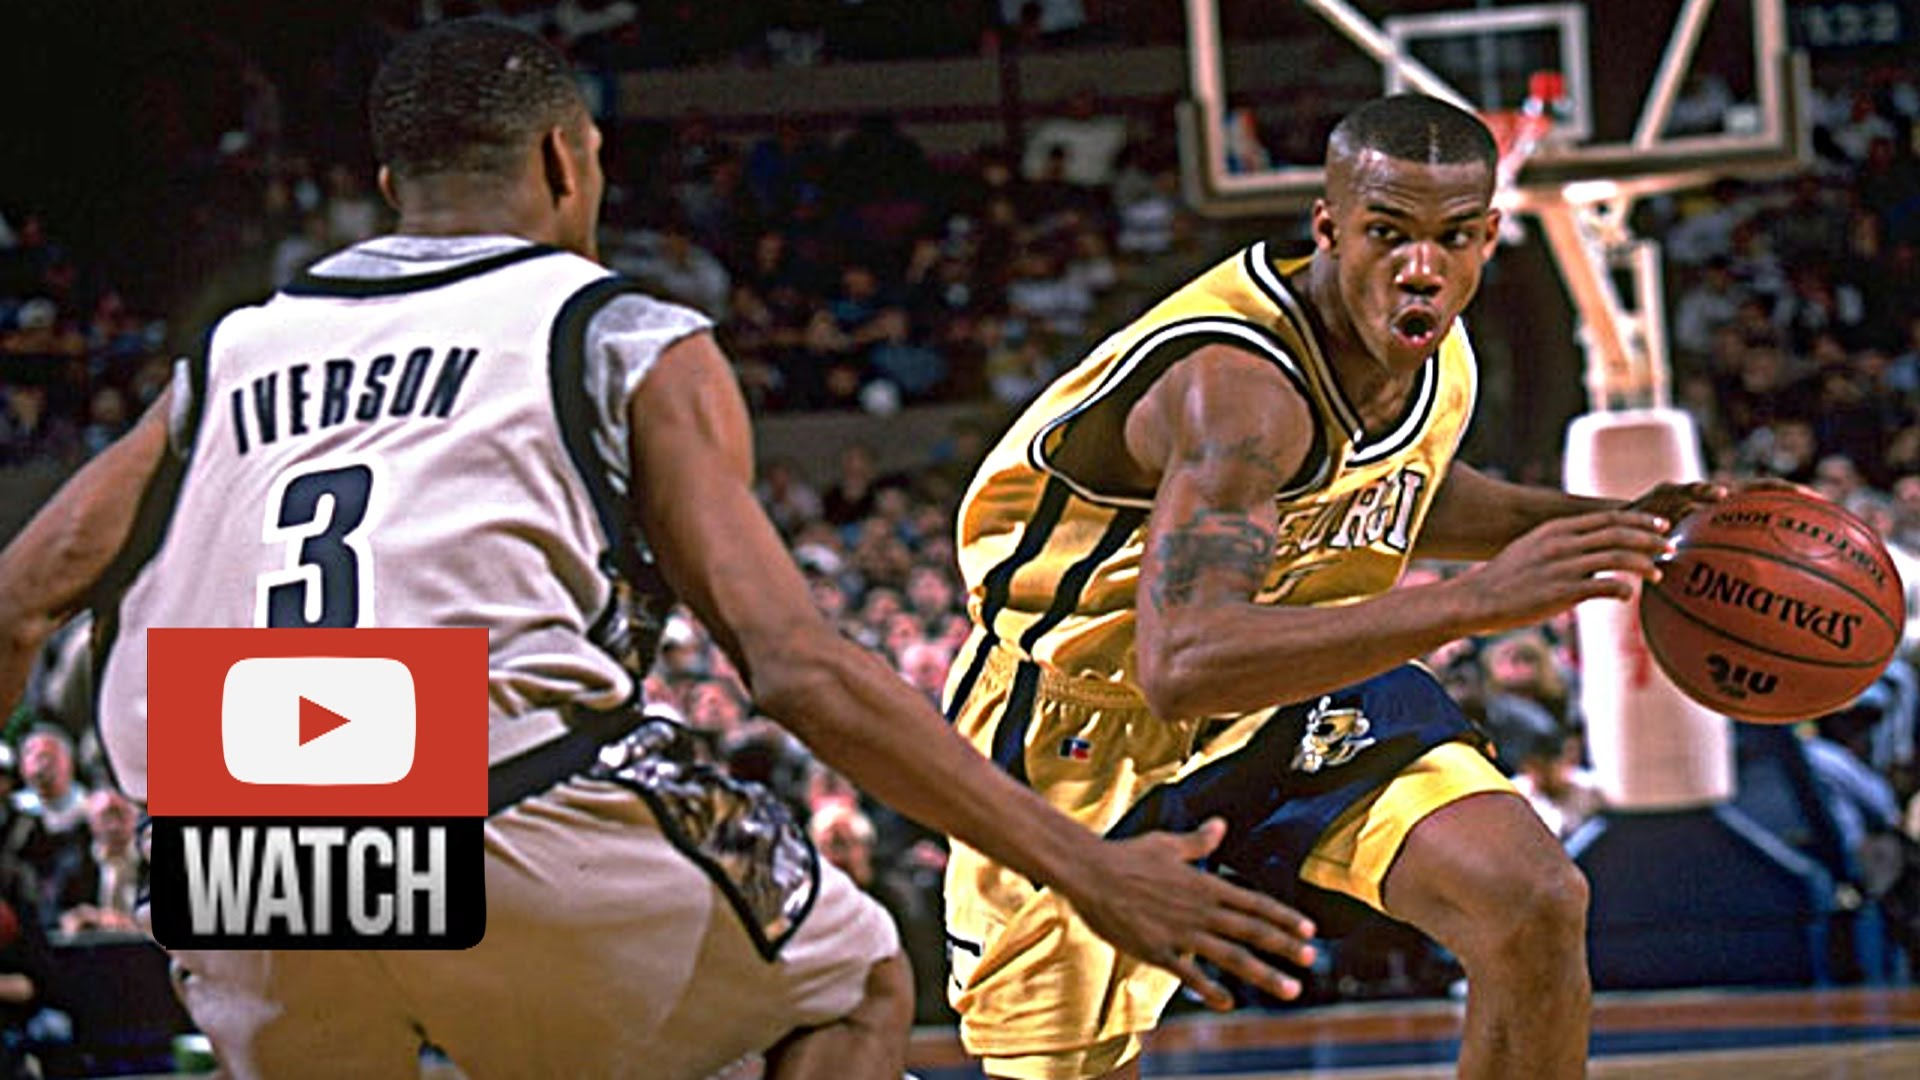 Allen Iverson Vs. Stephon Marbury NIT Duel Highlights Hoyas Vs. Yellow Jackets